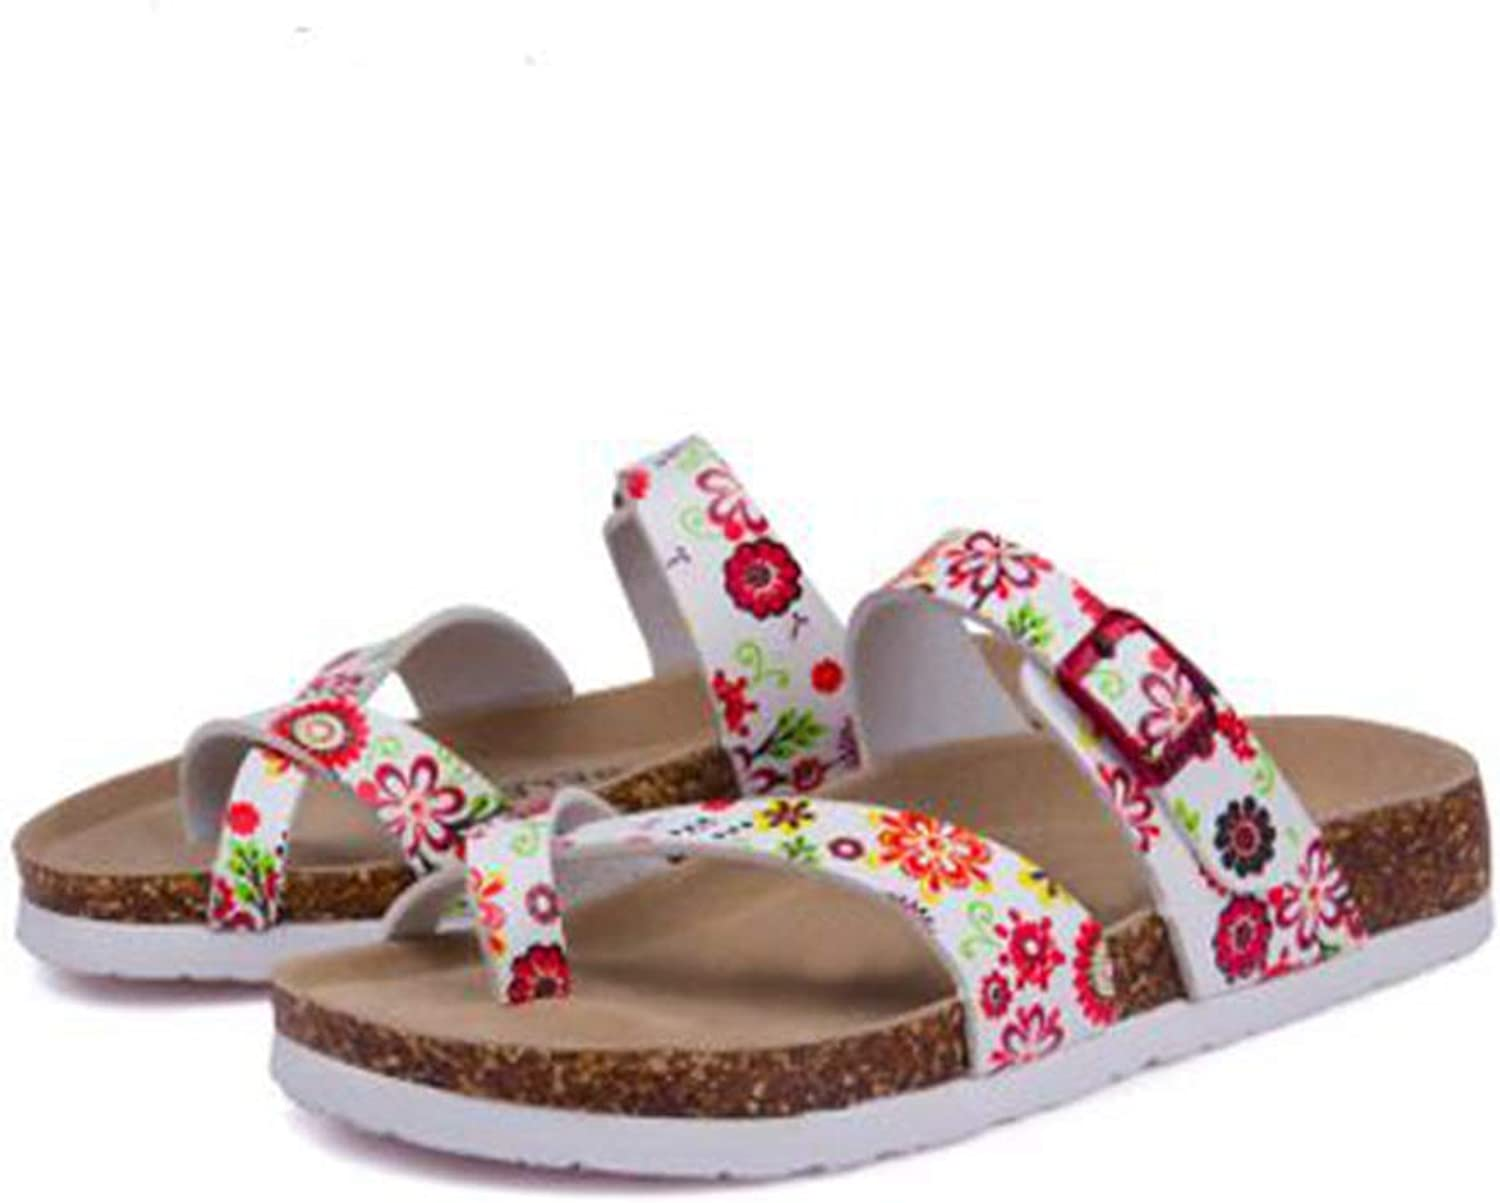 YaMiFan Women's Slide Flat Cork Sandals with Adjustable Strap Buckle Open Toe